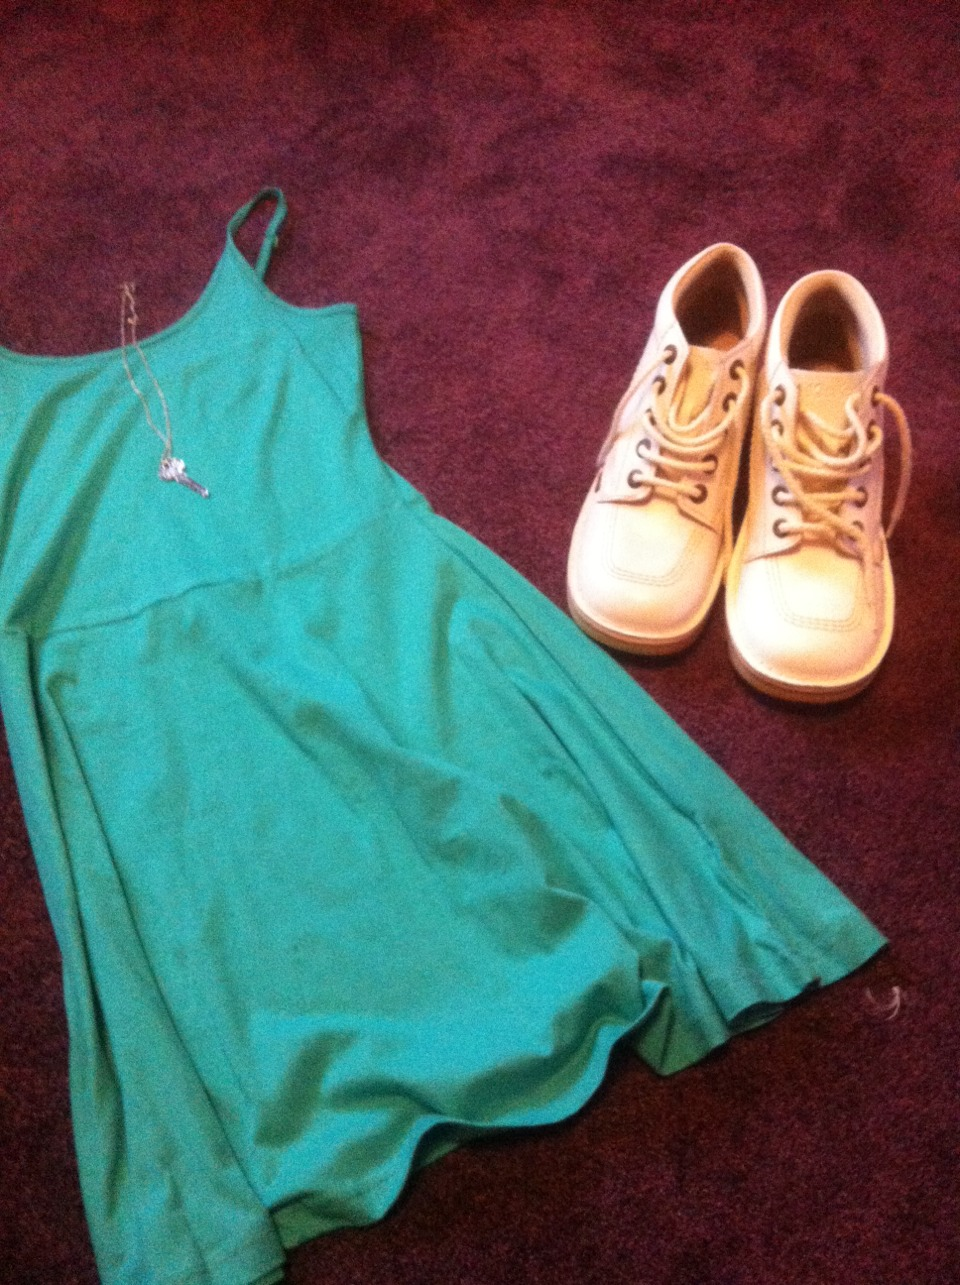 Penny's/primark dress, kicker shoes and pair with a white cardi, tights and a necklace!